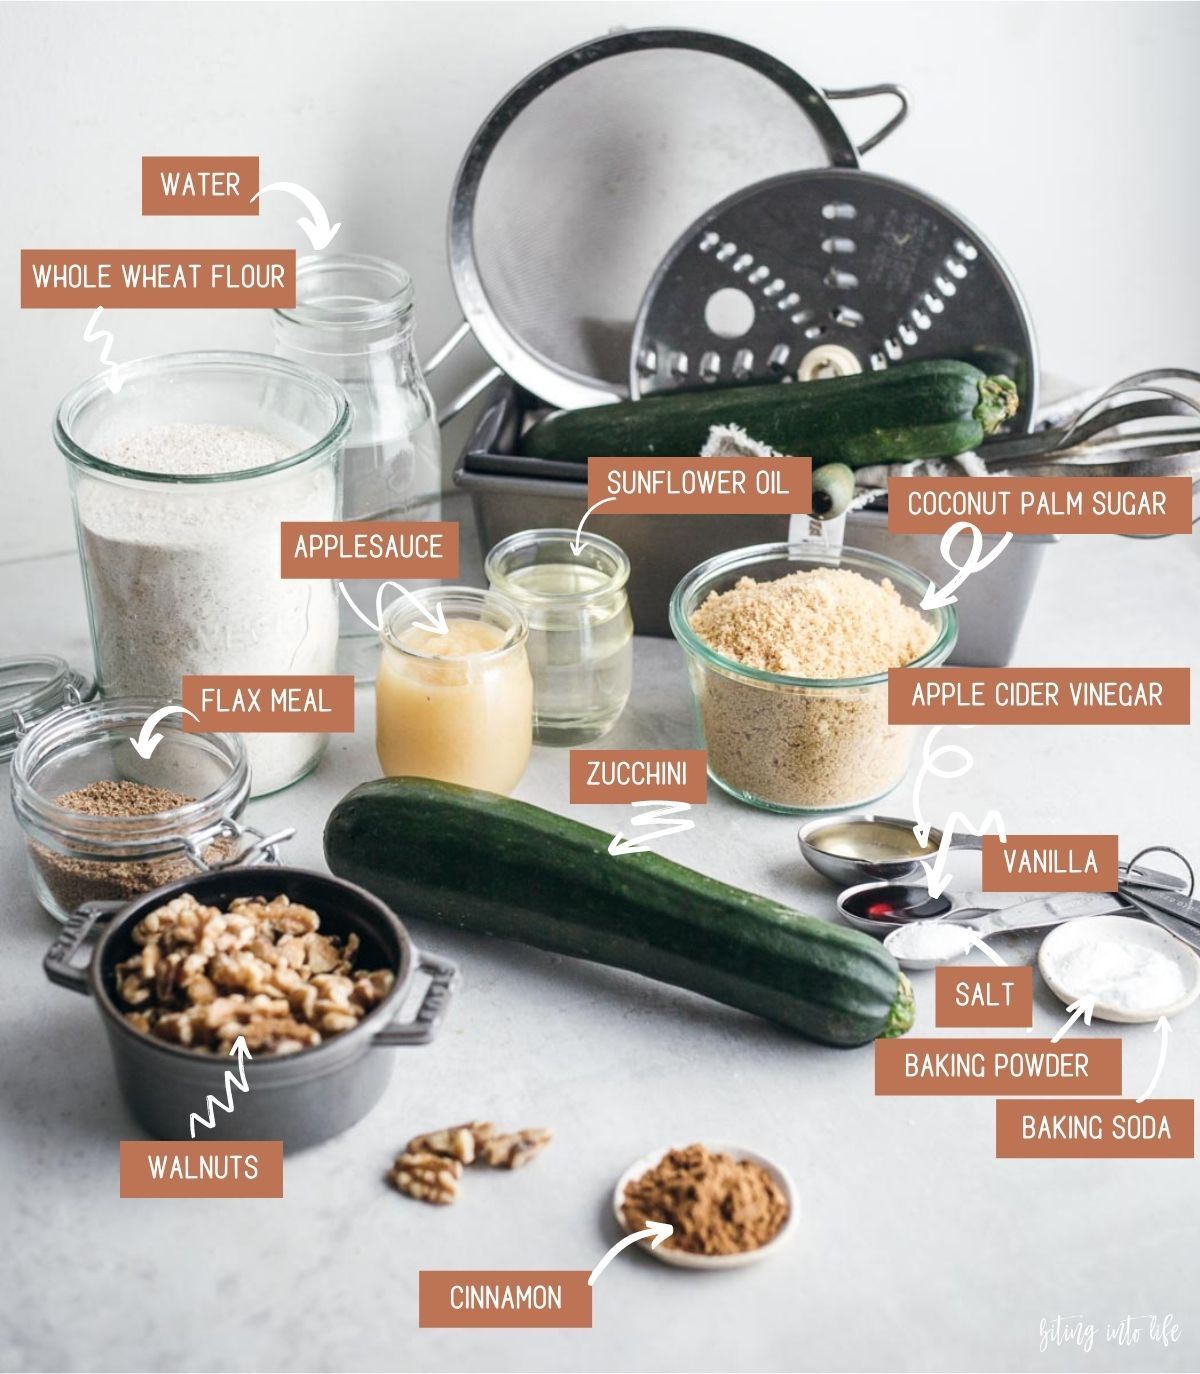 Vegan zucchini bread ingredients spread on a surface